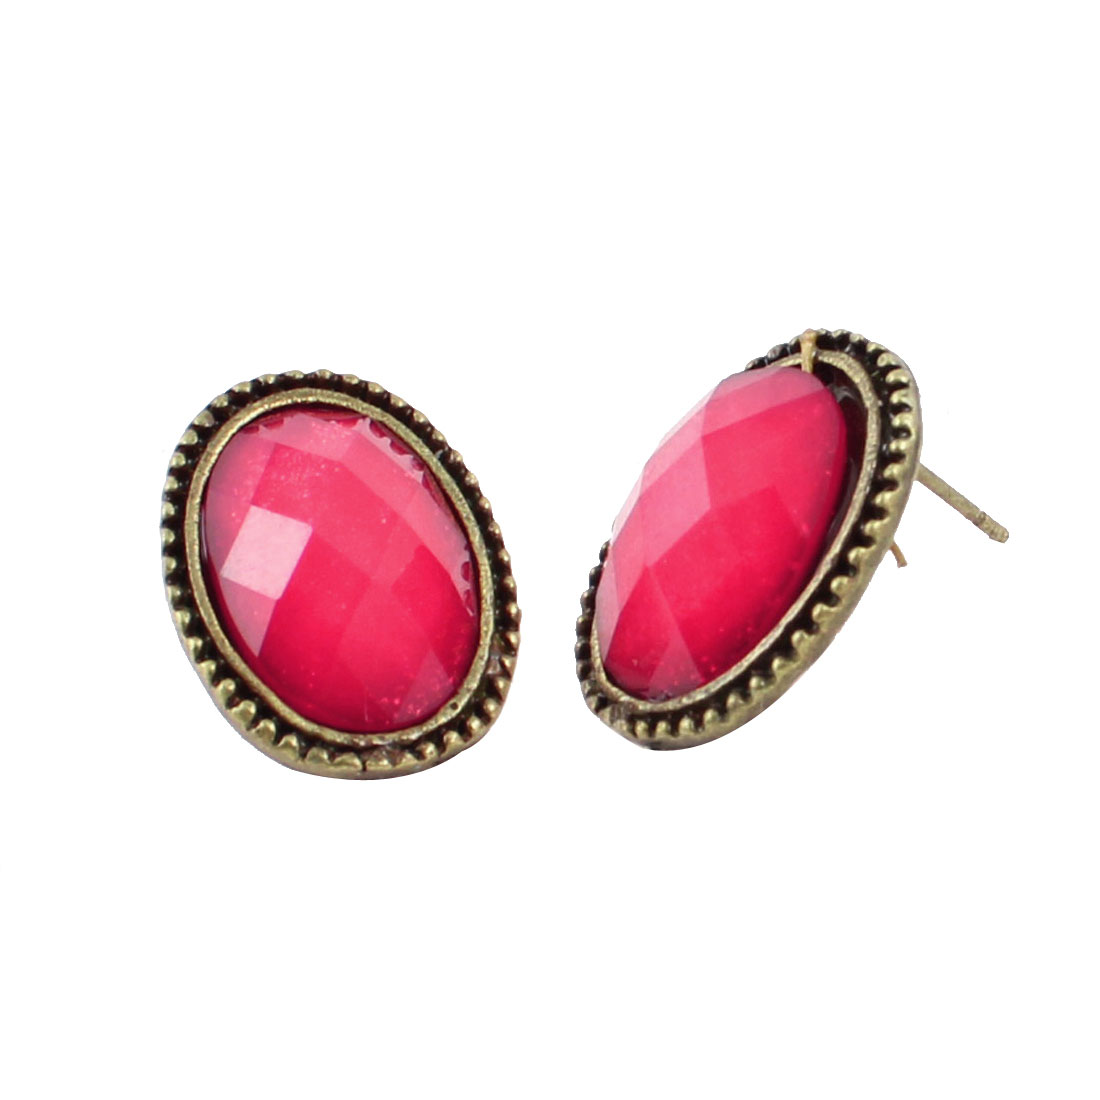 Woman Red Crystal Detail Bronze Tone Brim Oval Shaped Earbobs Stud Earrings